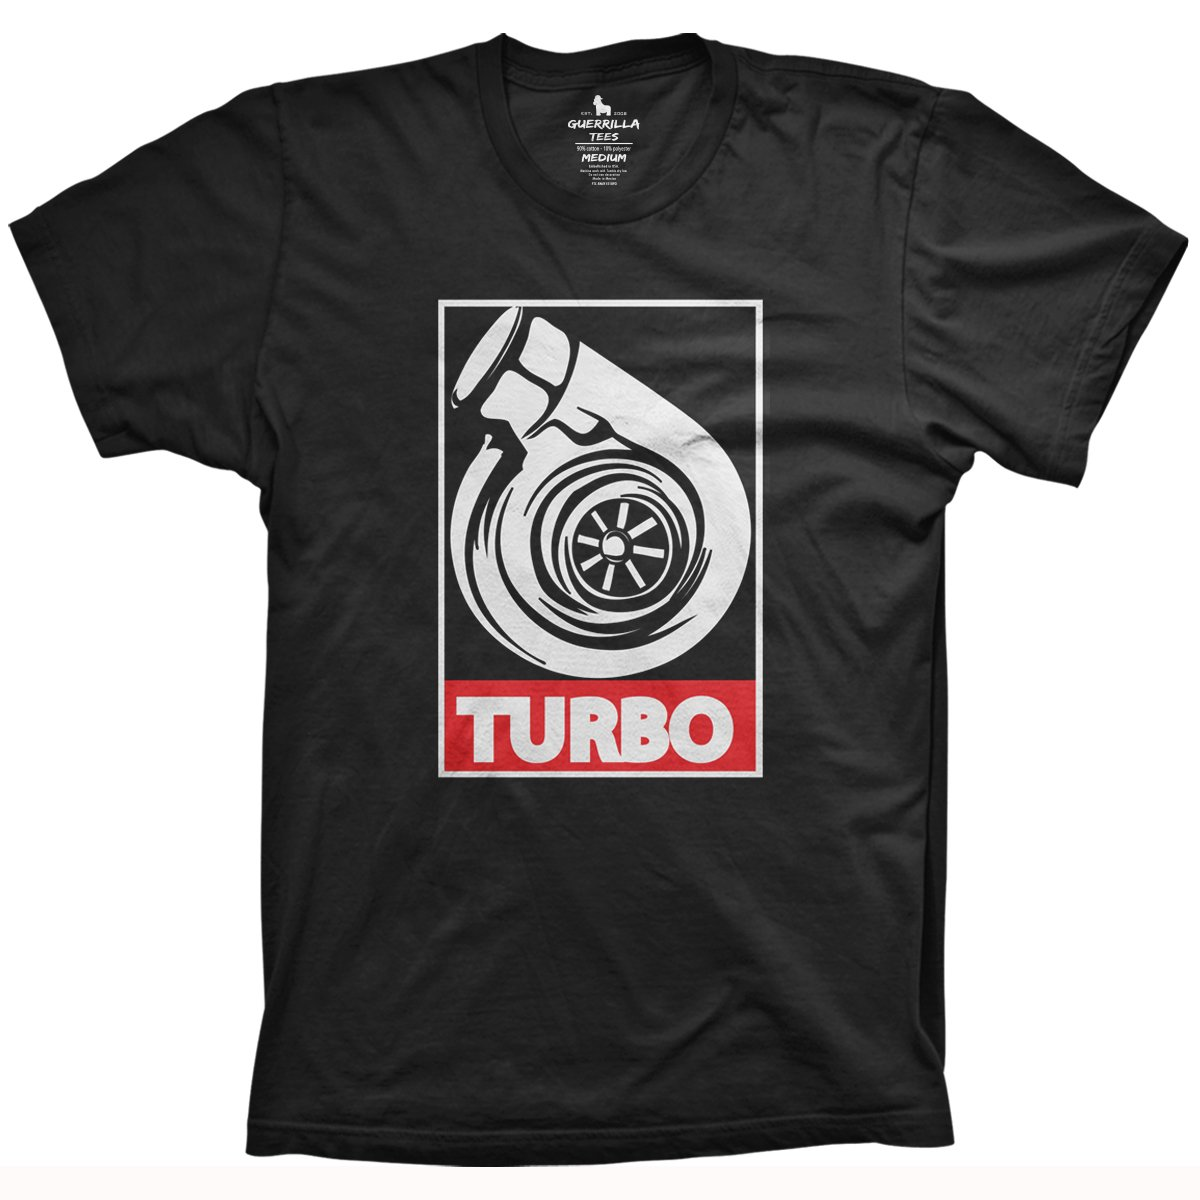 Obey the Turbo